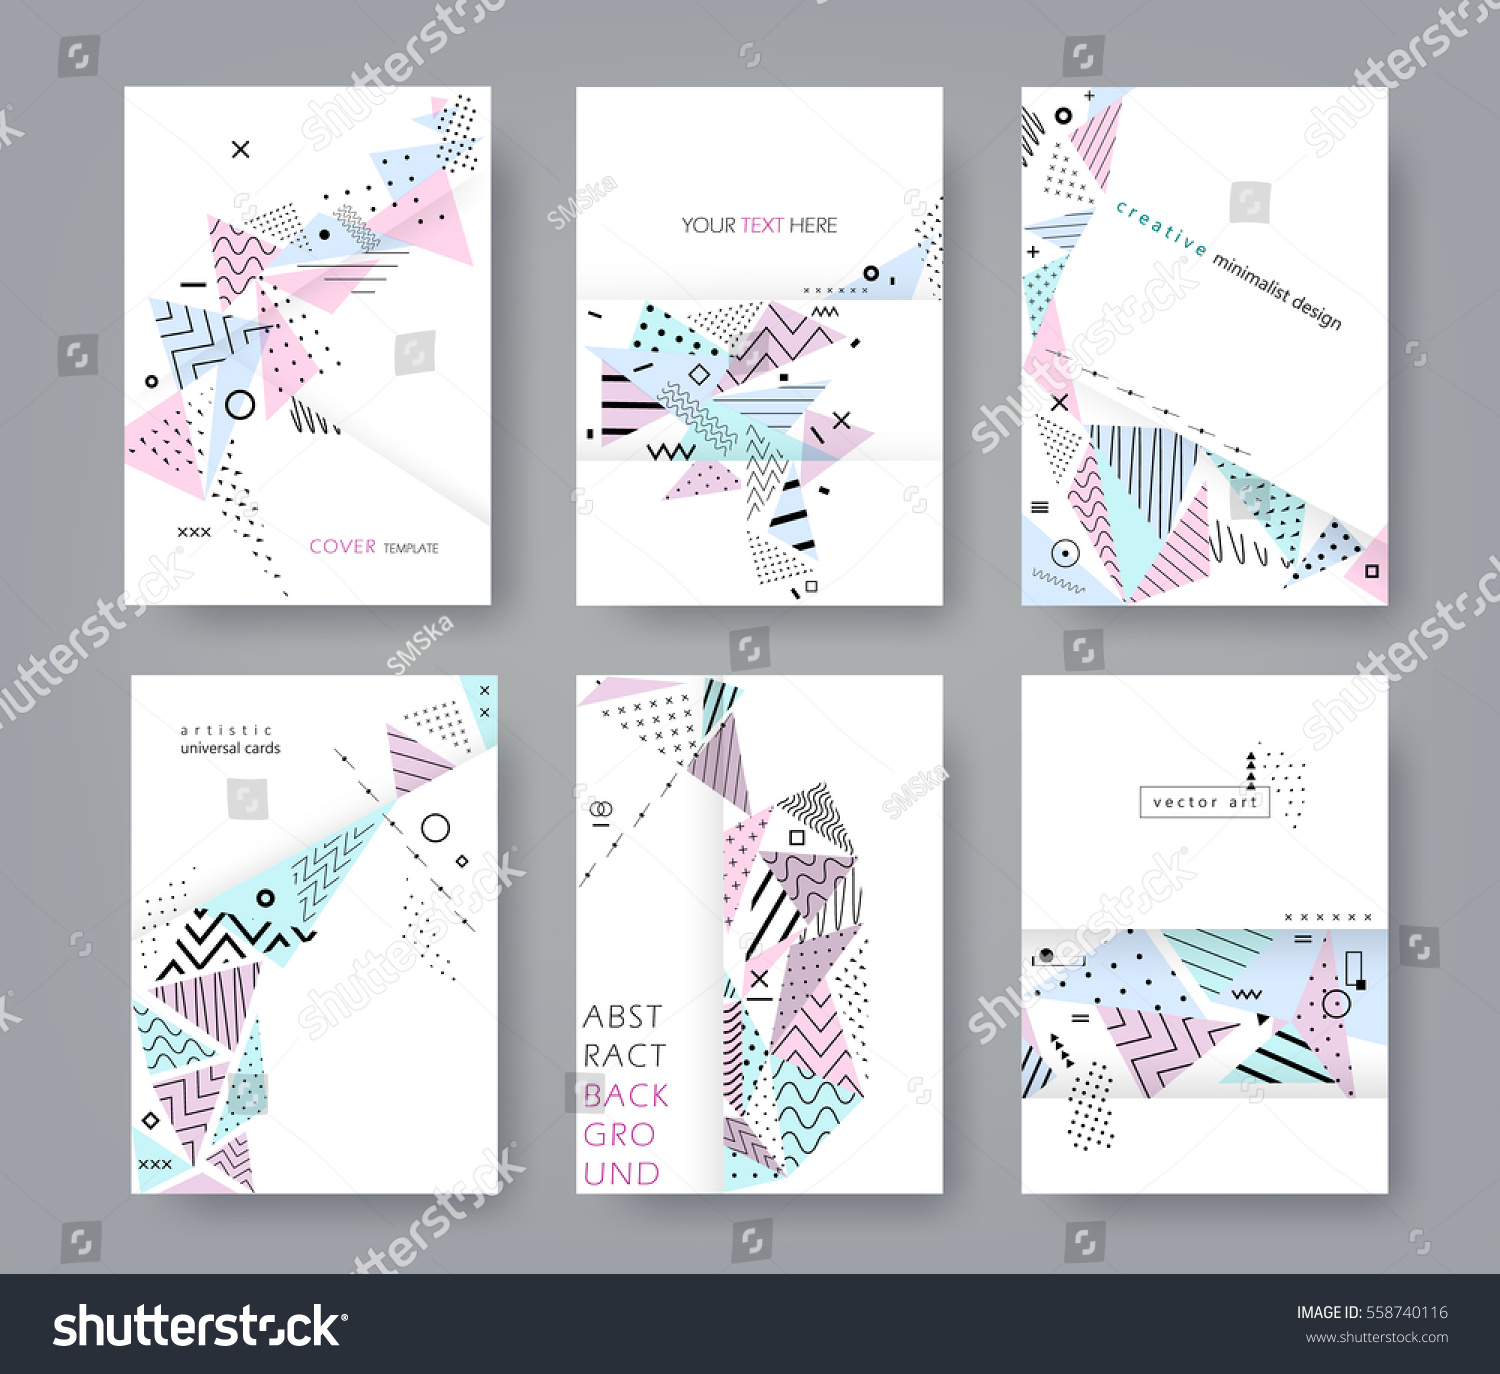 Minimalist Book Cover Template : Set artistic universal cards flat creative stock vector